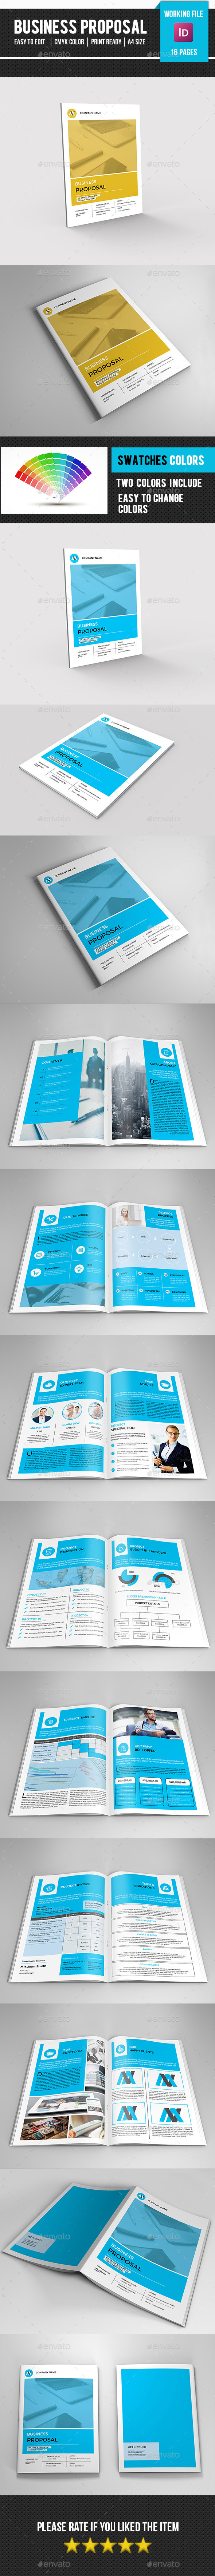 Company Proposal Template-V311 - Proposals & Invoices Stationery